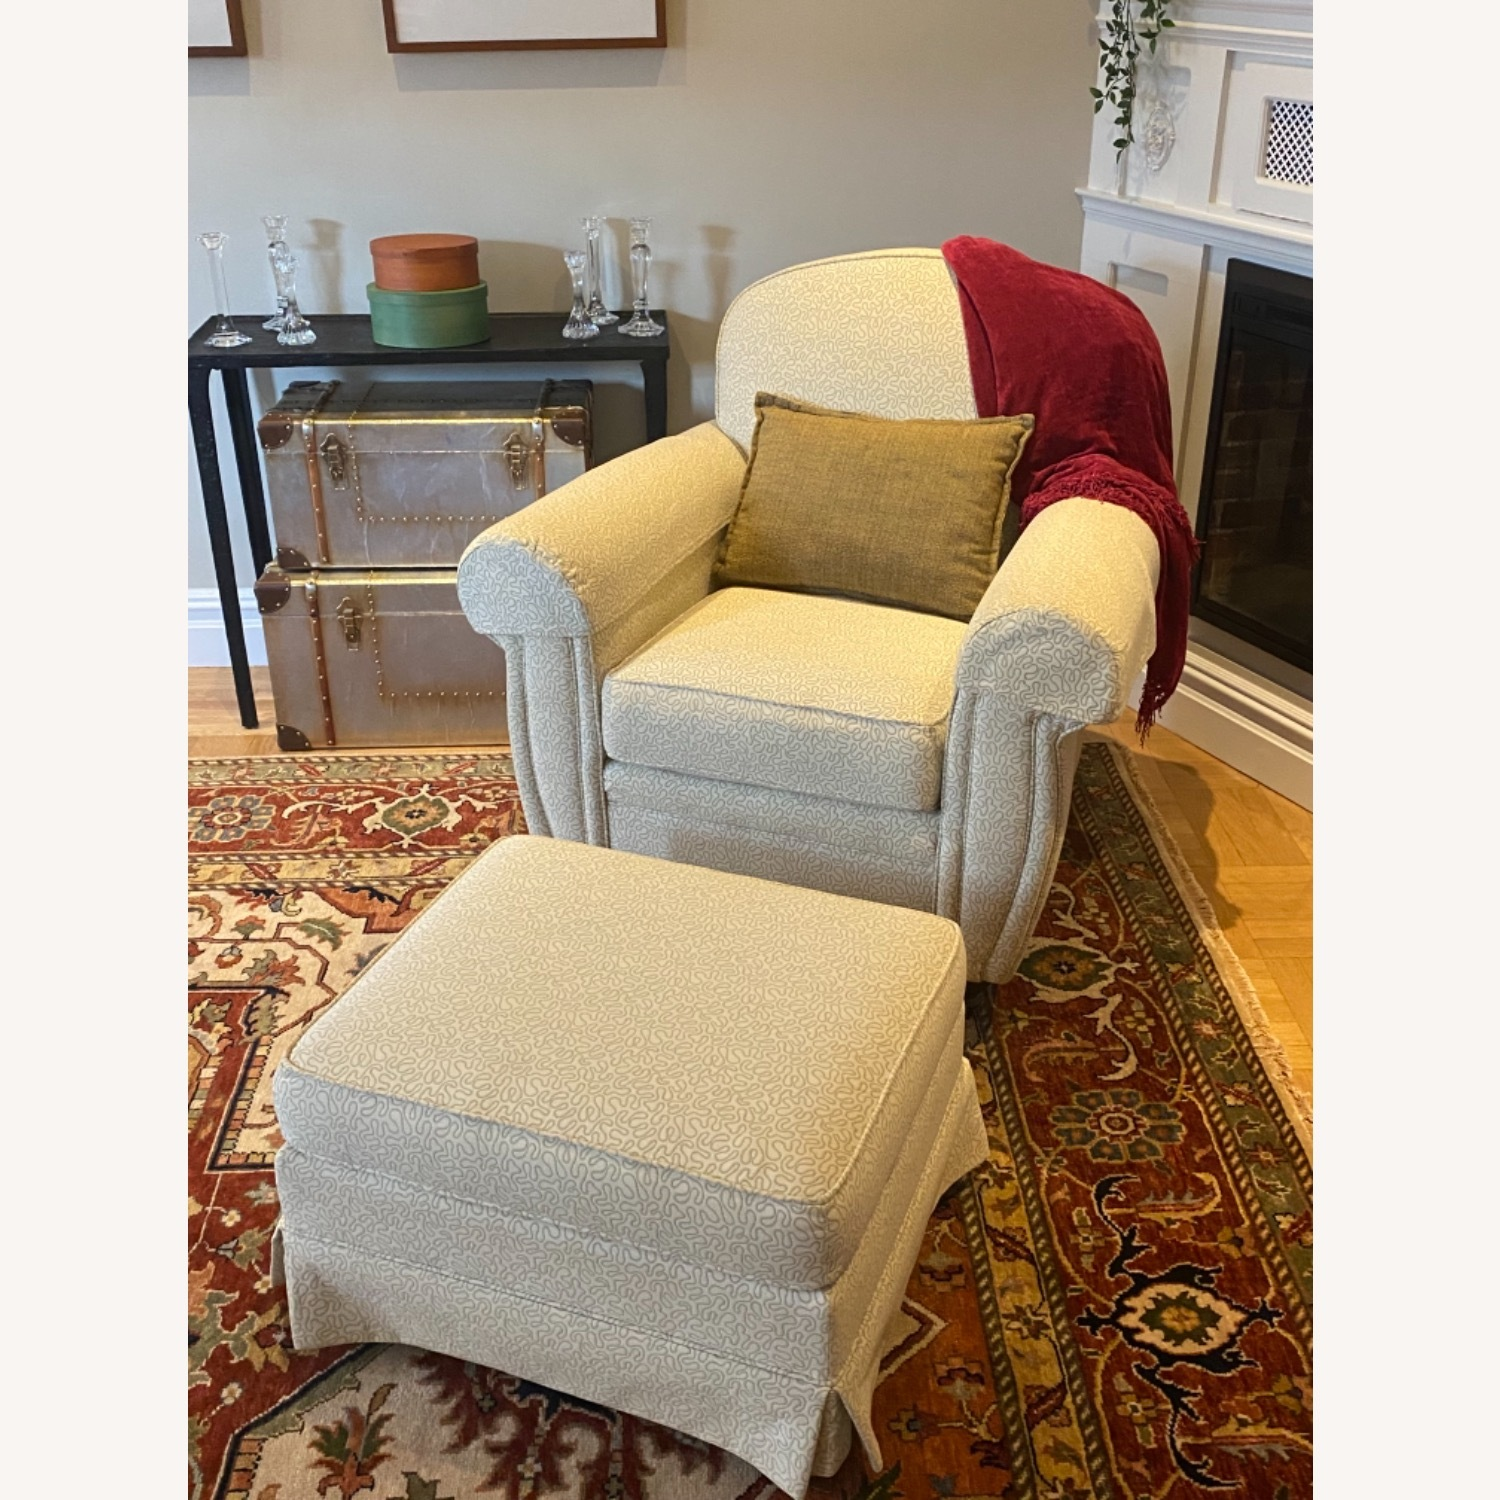 Ethan Allen 2 Upholstered Arm Chairs with 1 Ottoman - image-4